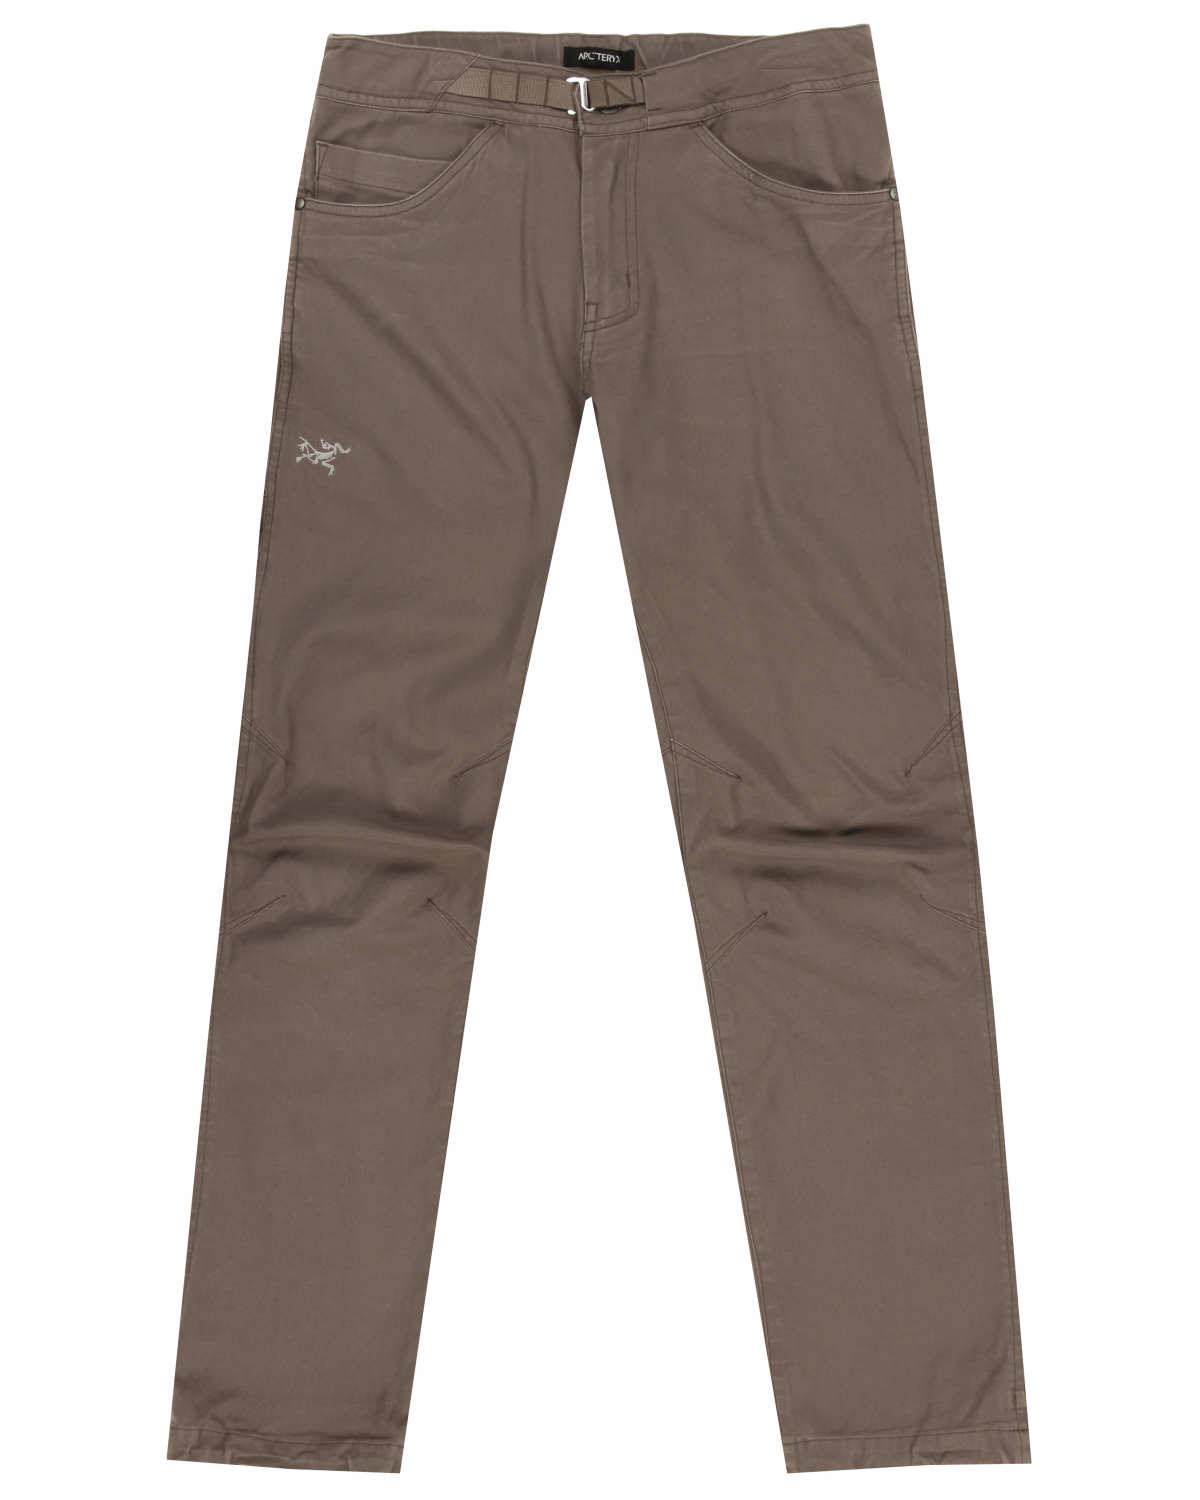 Main product image: Texada Pant Men's